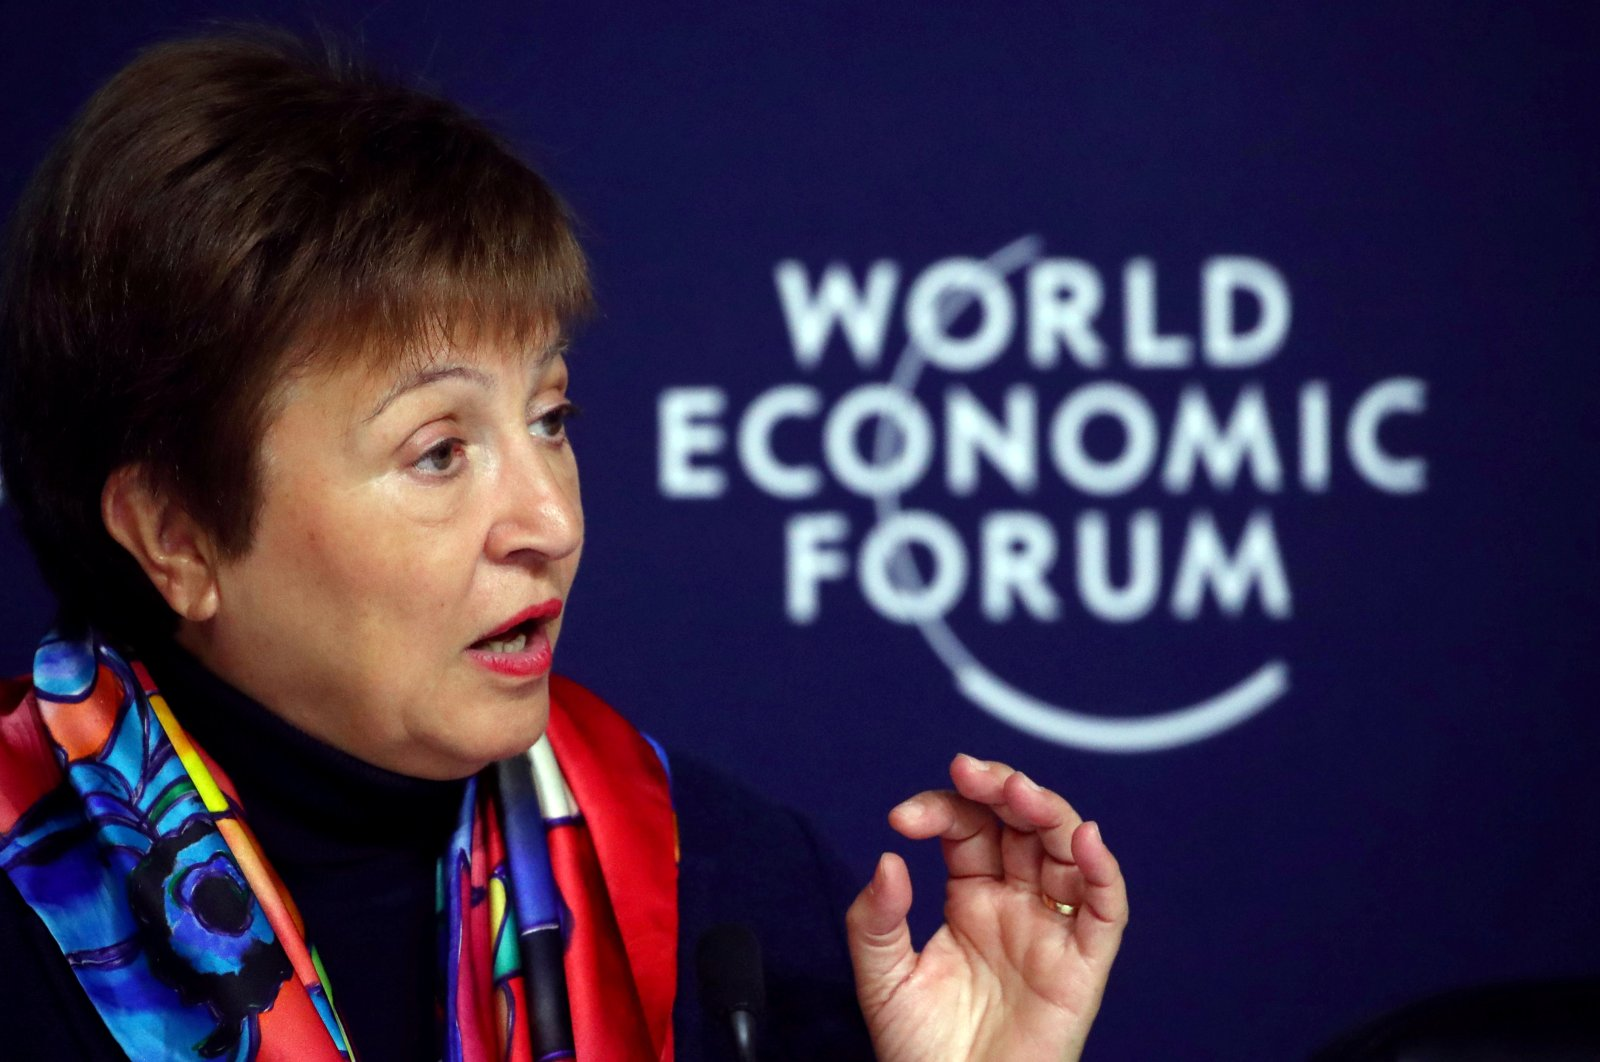 IMFManaging Director Kristalina Georgievaattends a news conference ahead of the World Economic Forum (WEF) in Davos, Switzerland January 20, 2020. (REUTERS Photo)